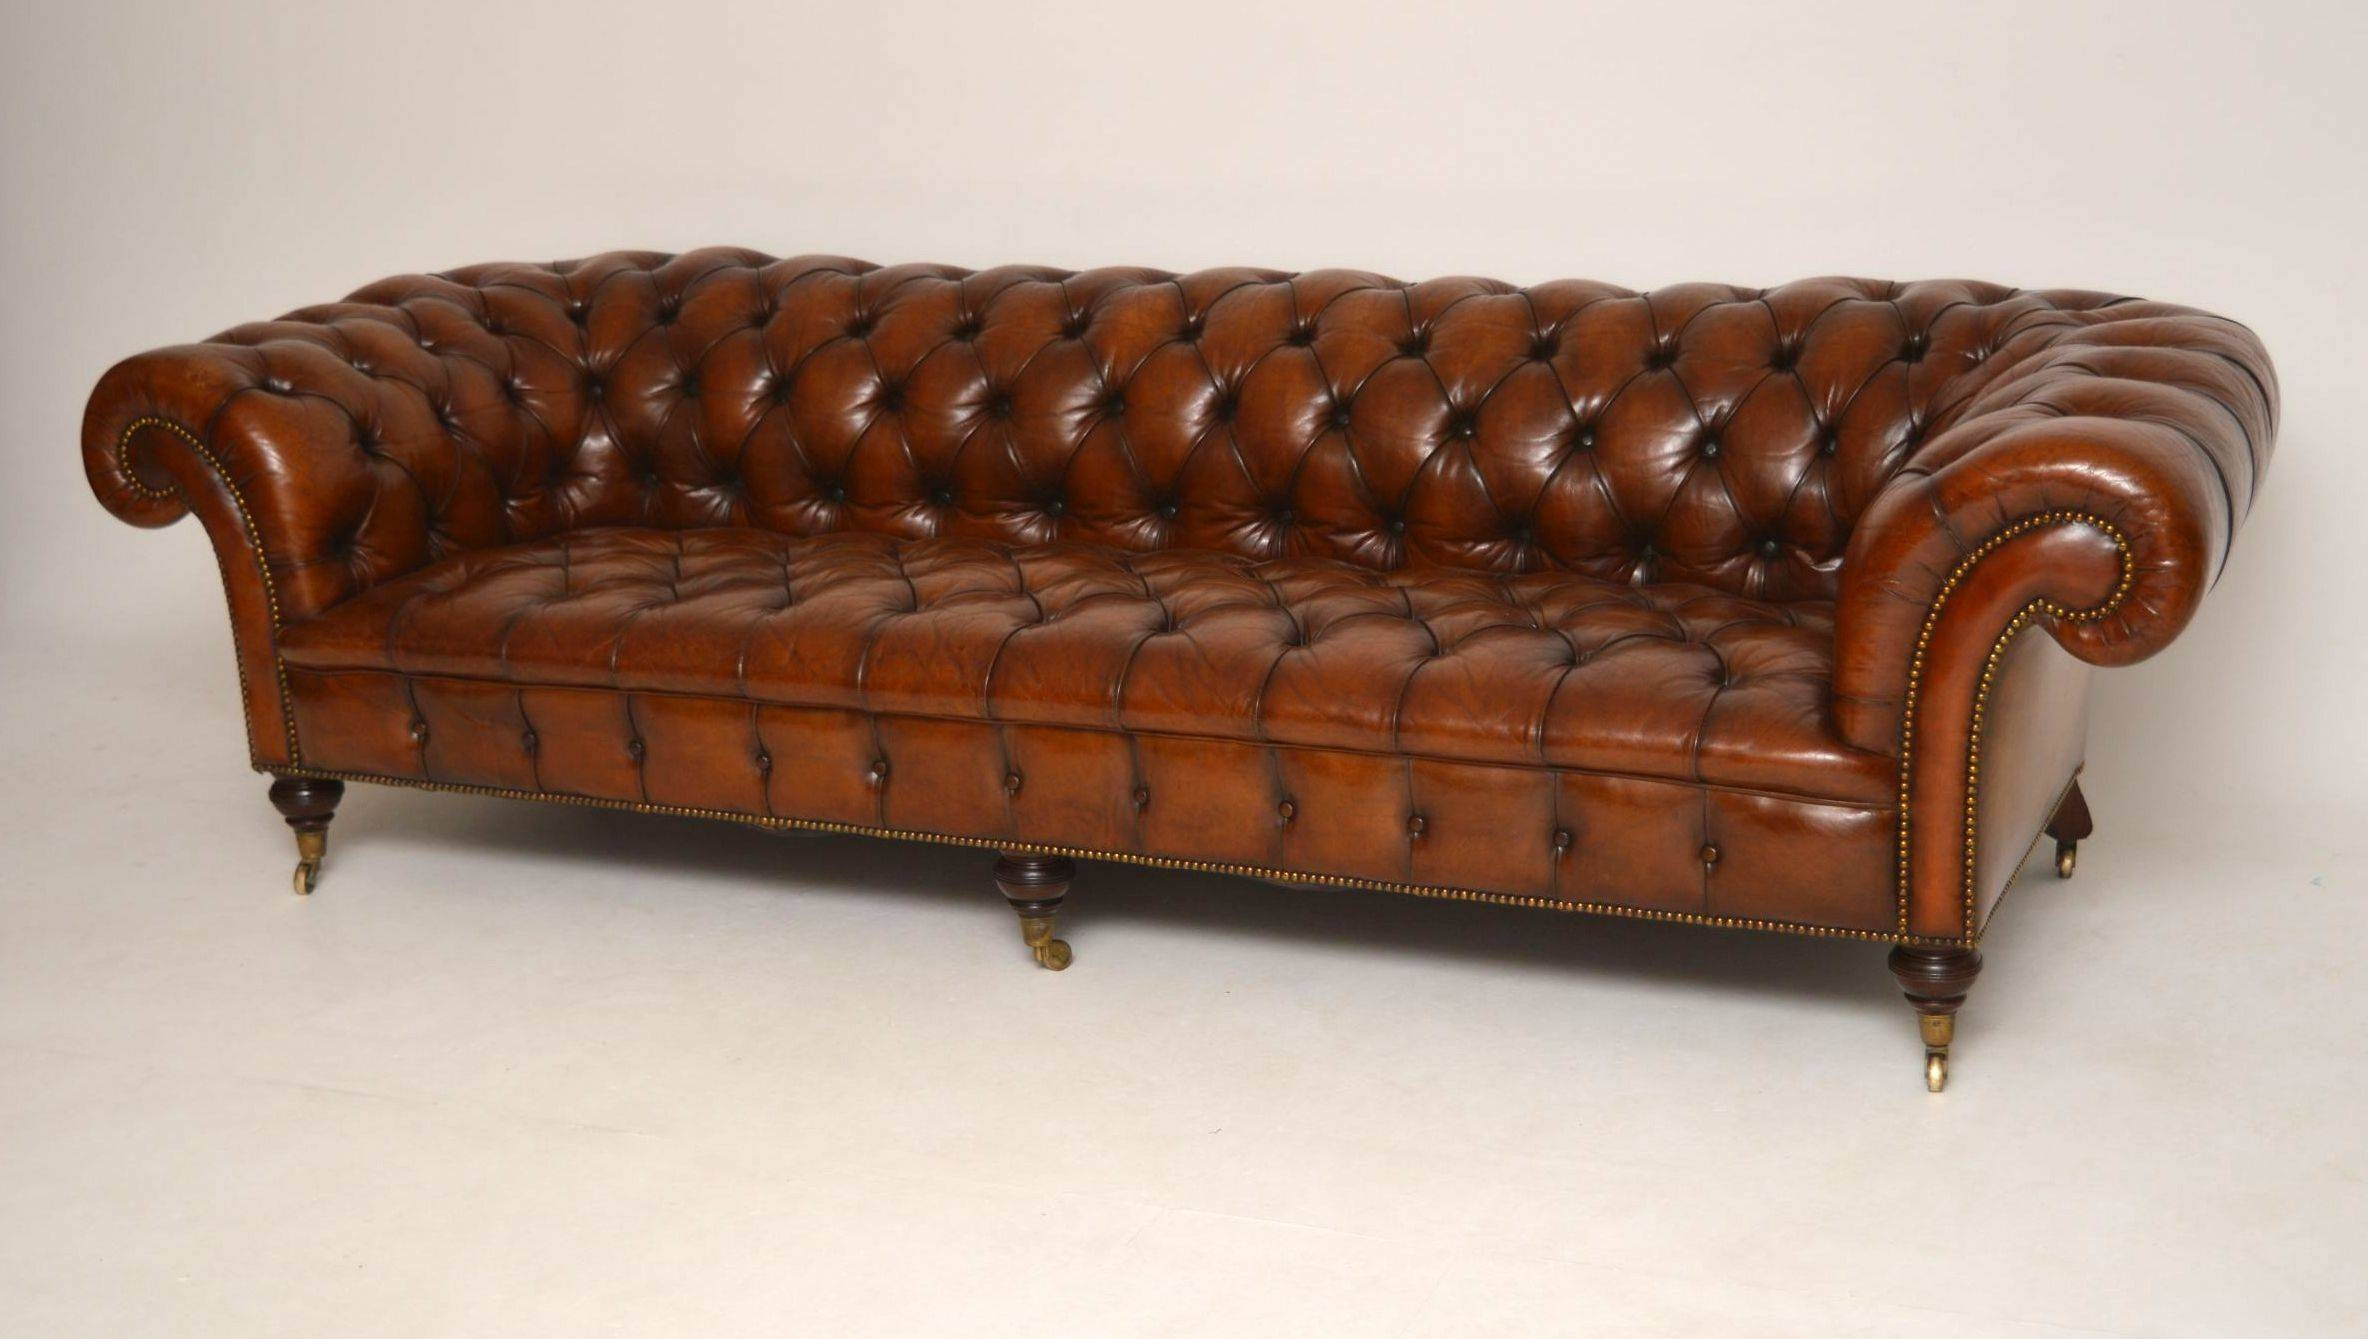 Storage Home Antiques Seating Antique Chesterfield Sofa Antique inside Victorian Leather Sofas (Image 24 of 30)